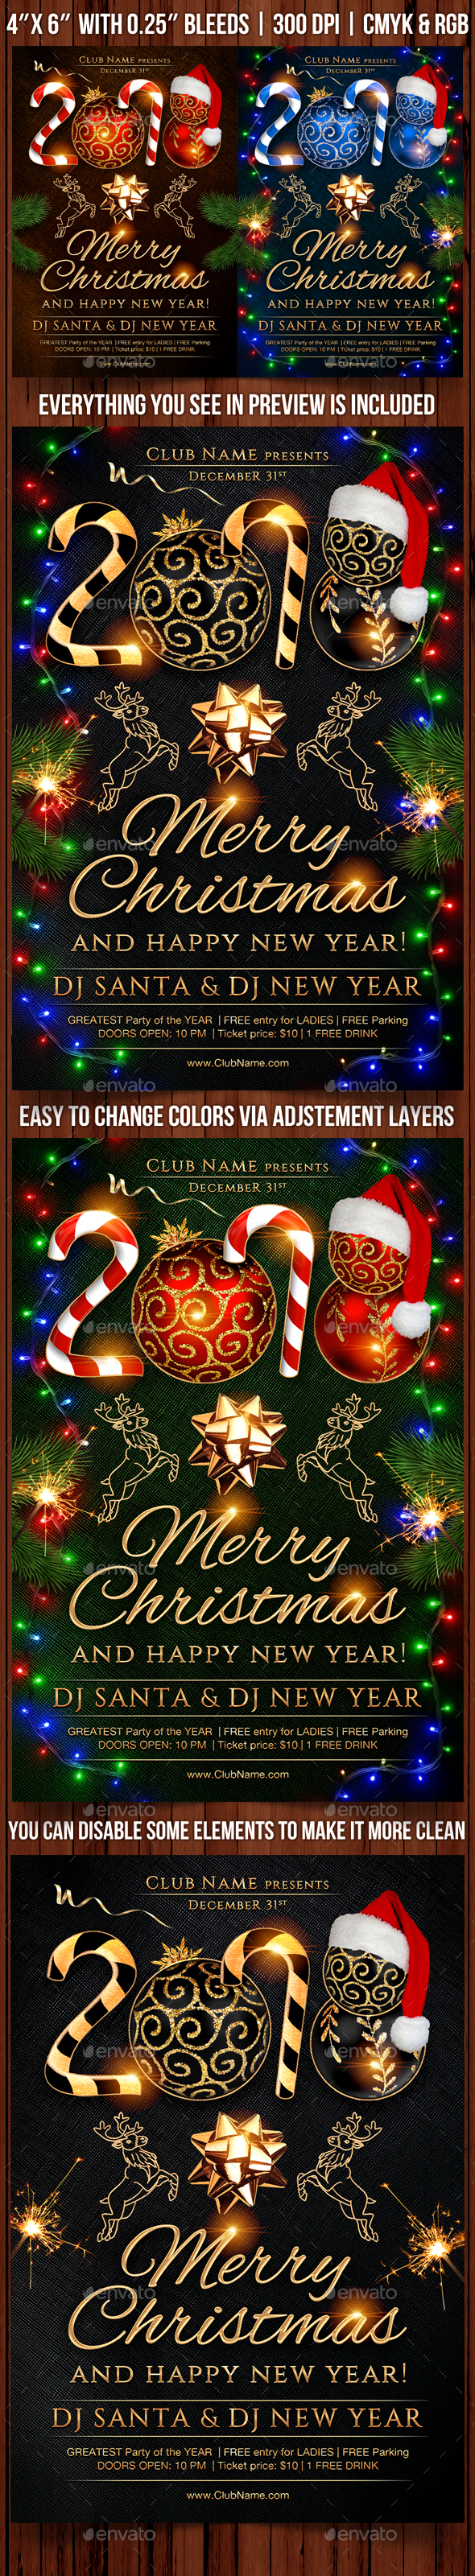 Christmas and New Year Party Flyer Template - Clubs & Parties Events